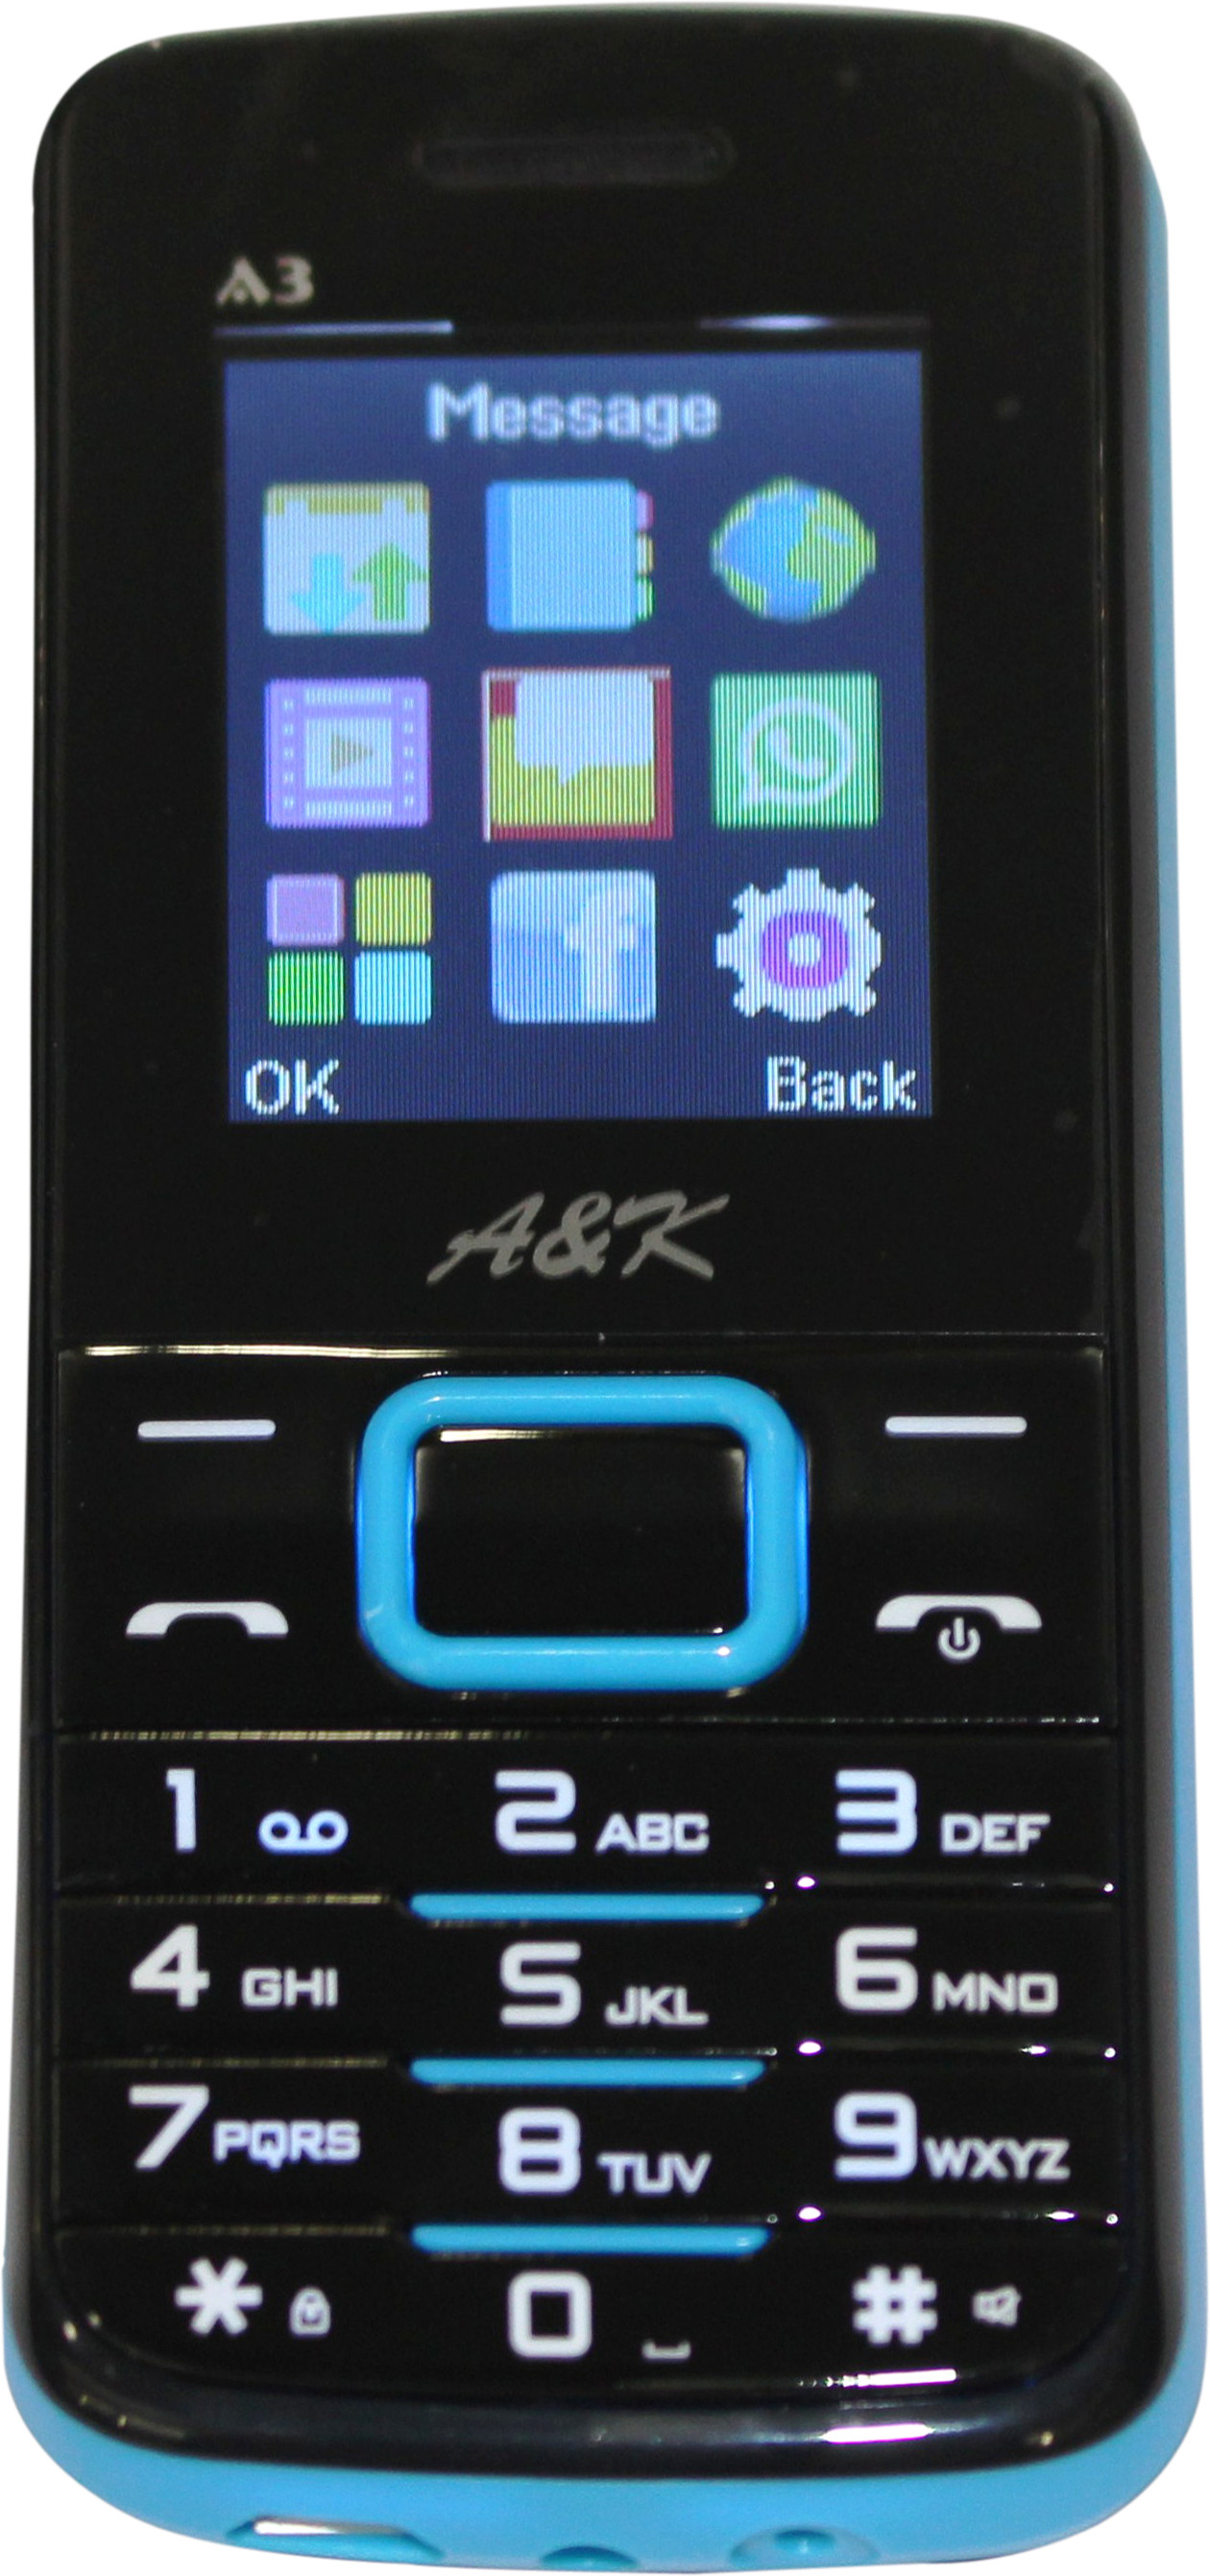 A&K Bar Phone A 3(Black, Blue)